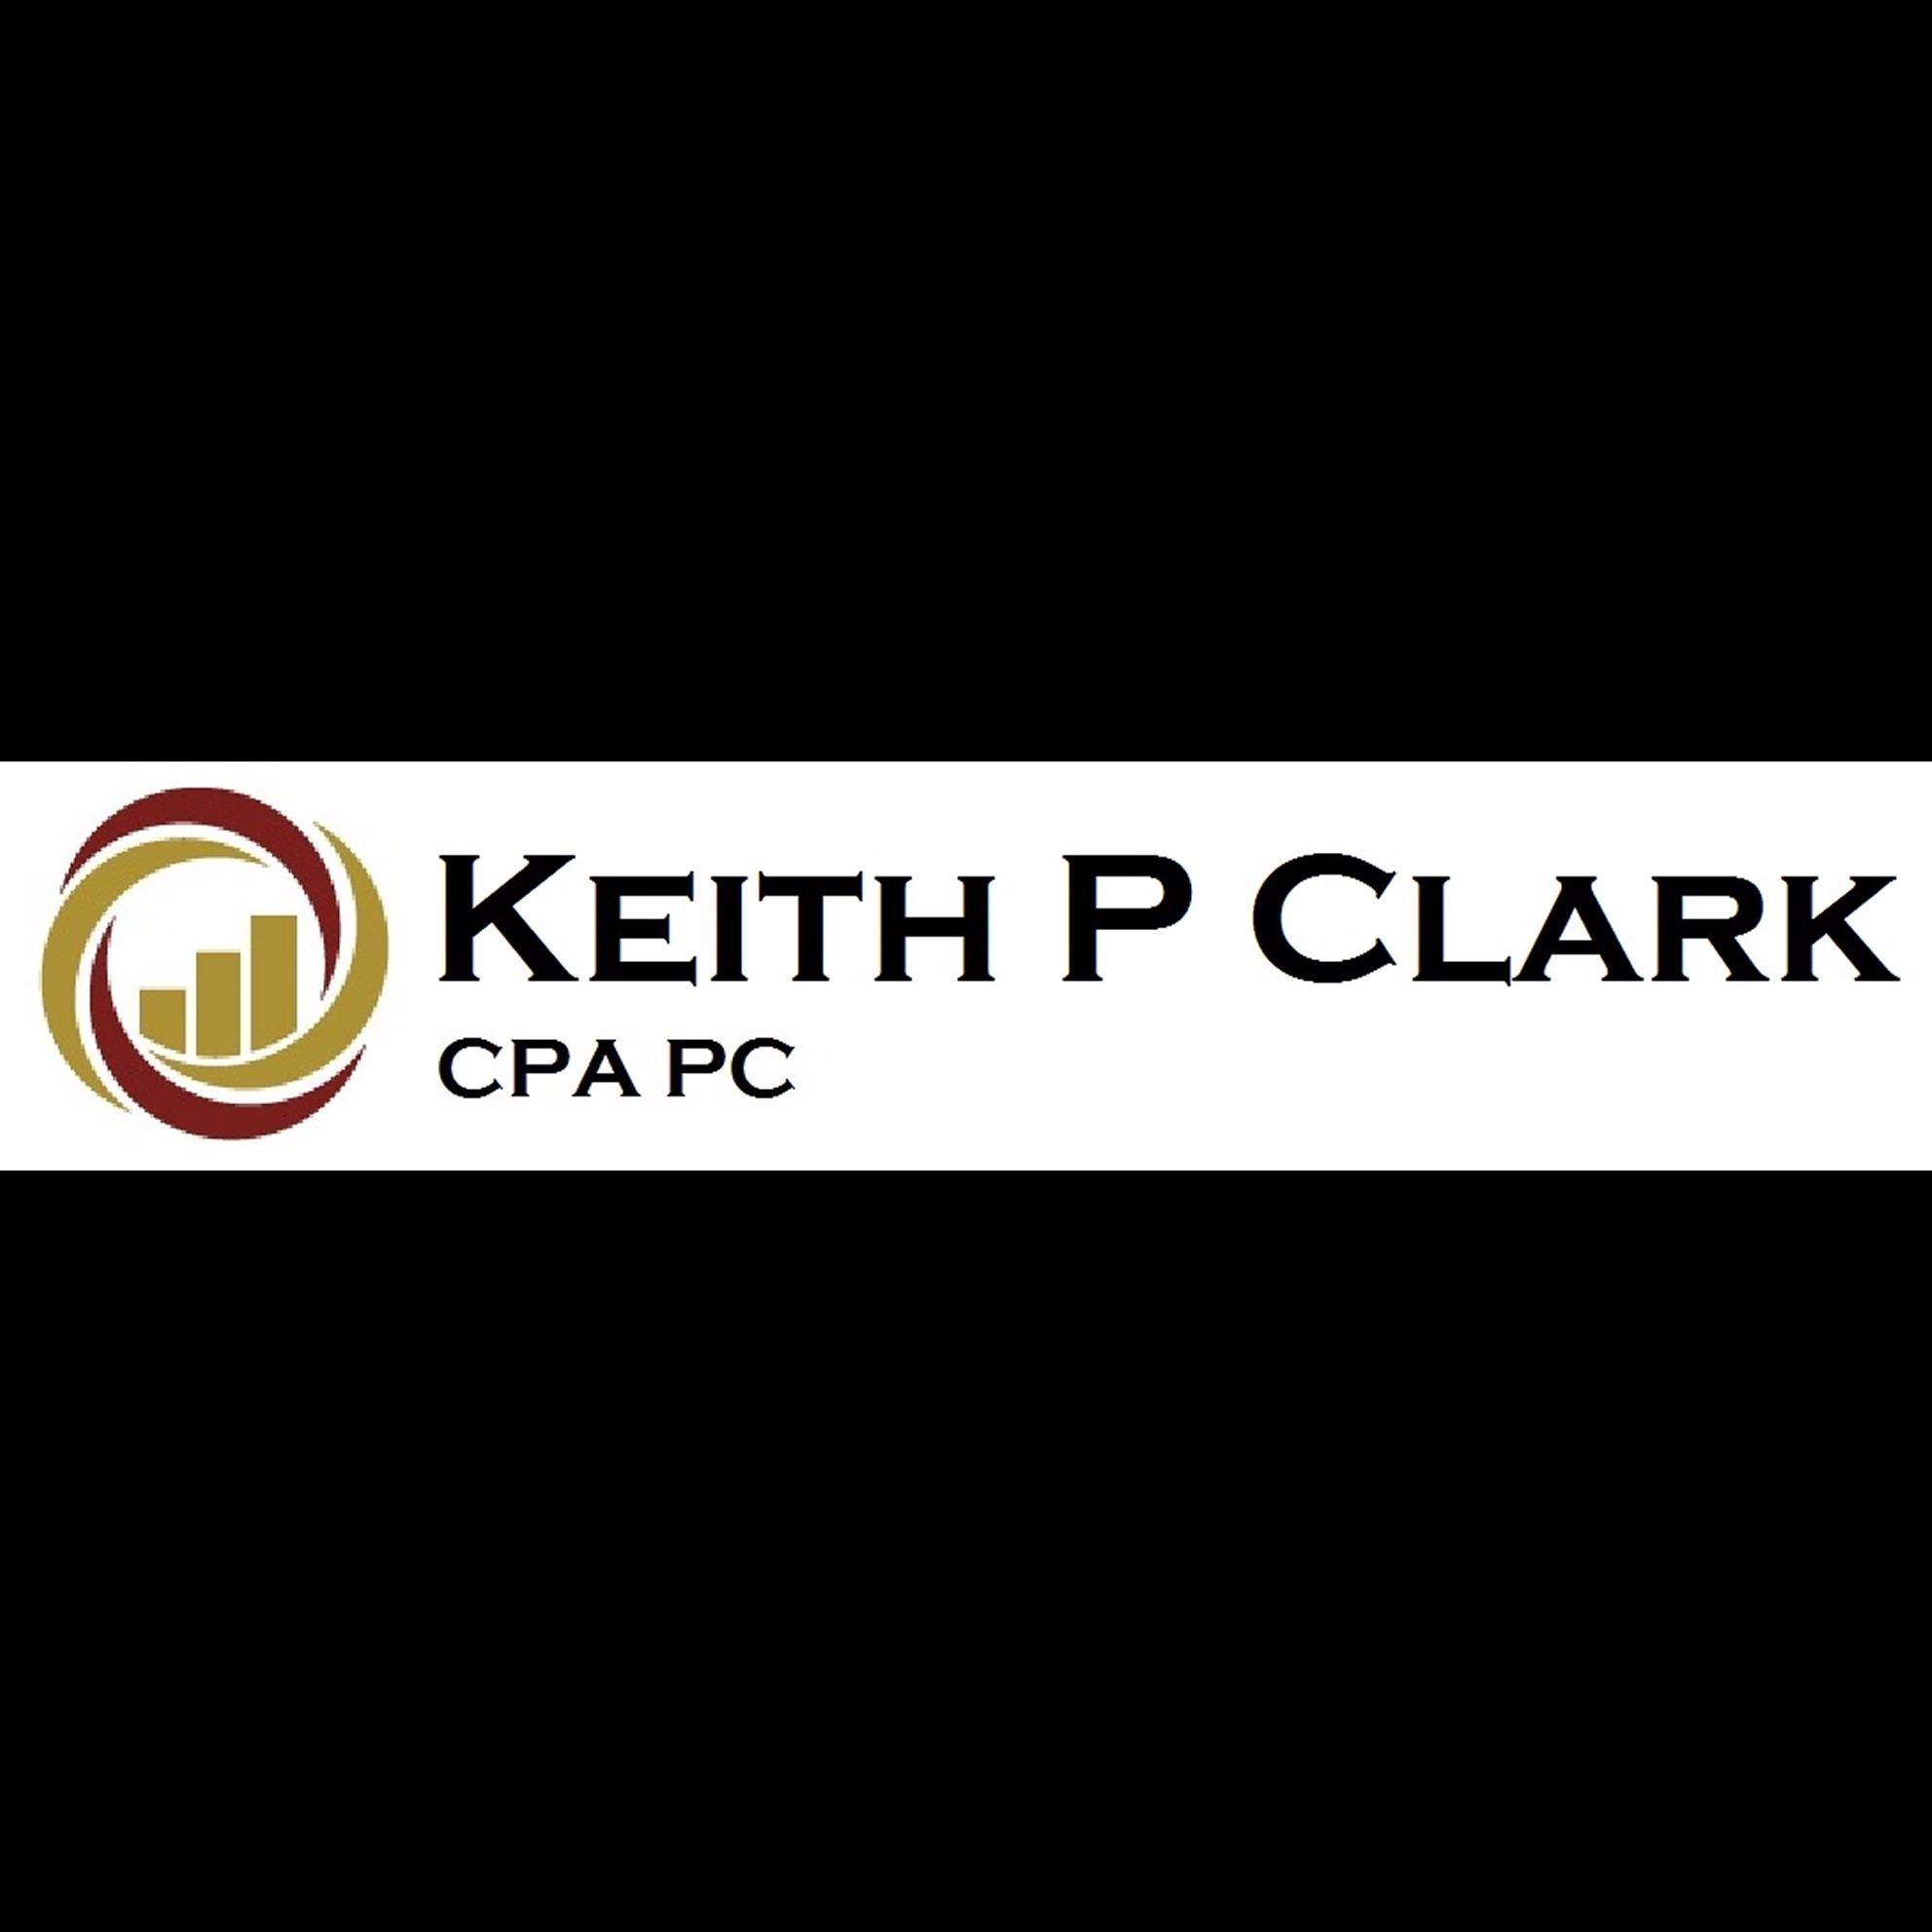 Keith P Clark CPA PC image 0